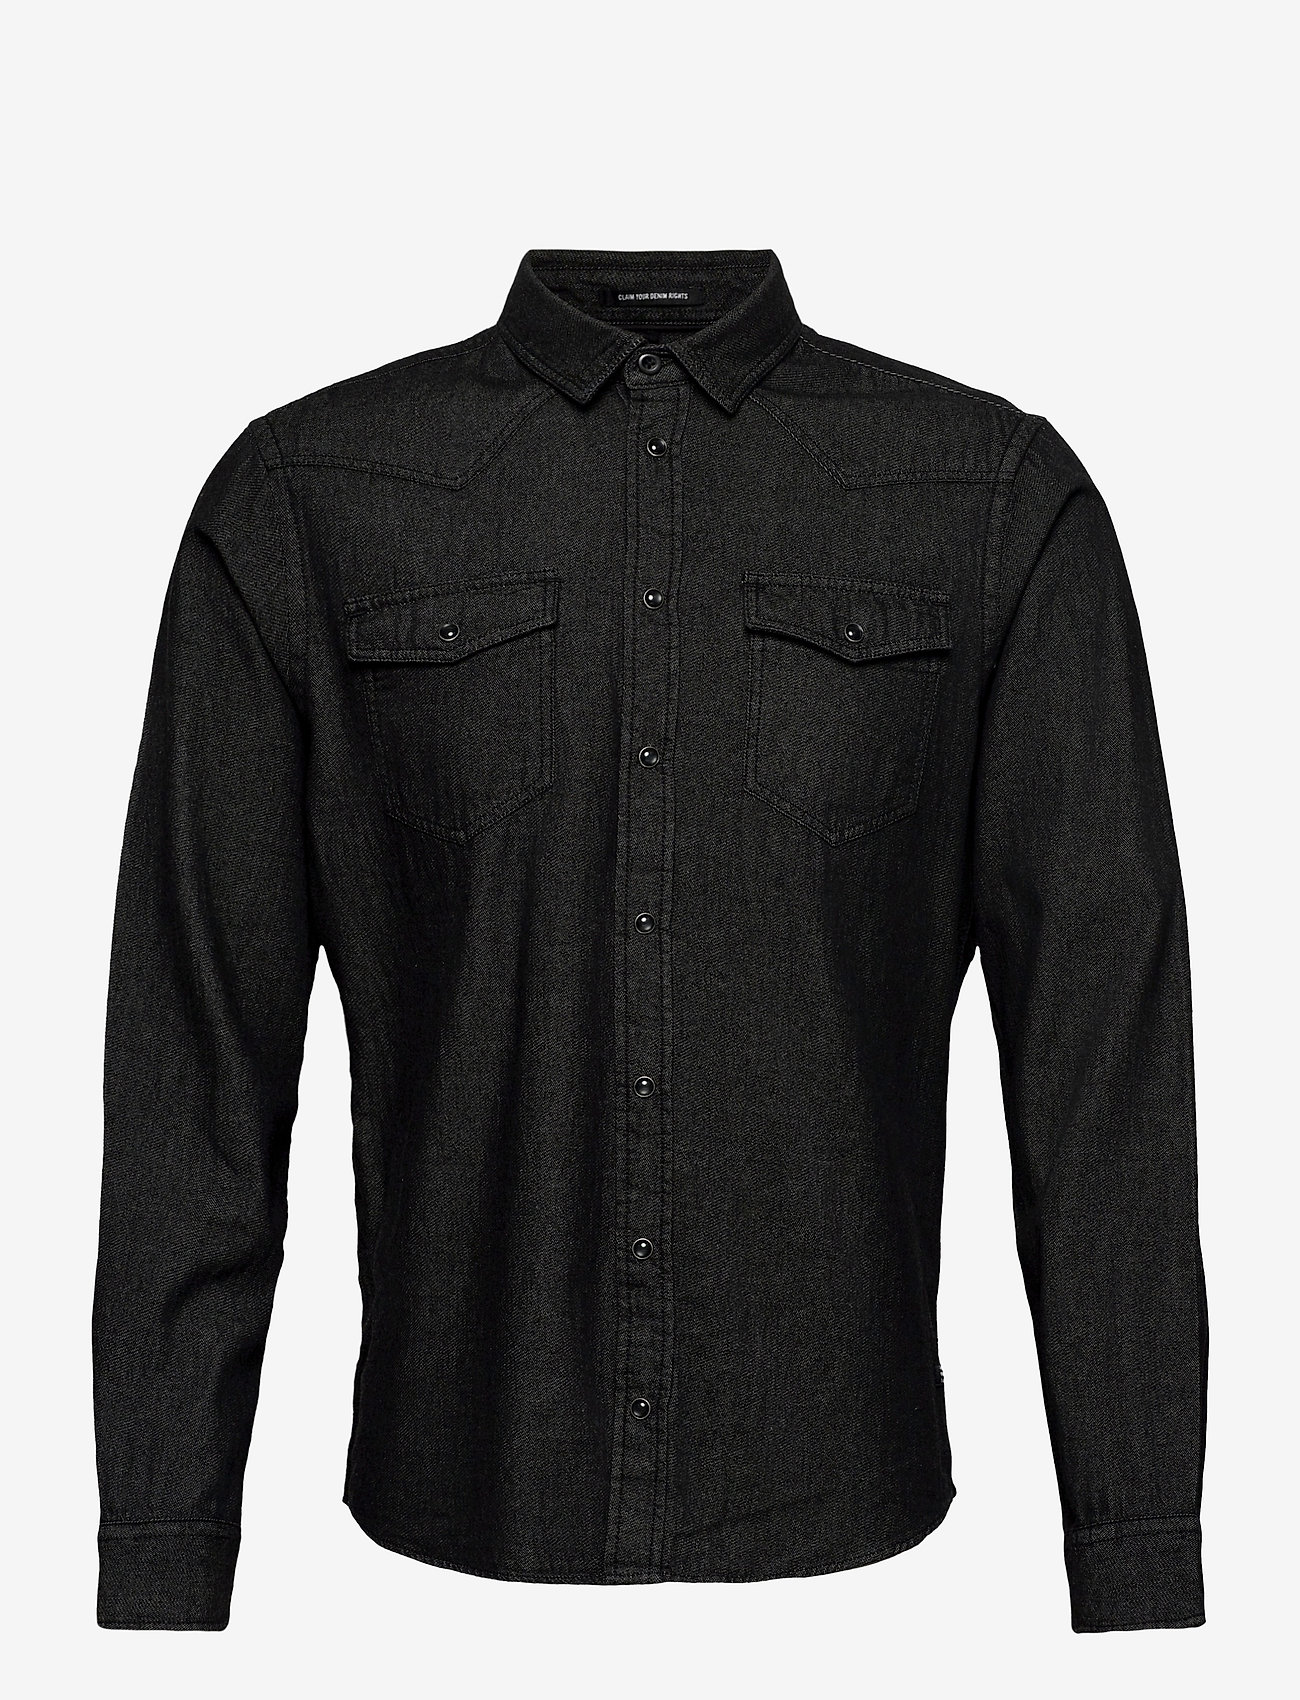 Blend - Shirt - chemises basiques - denim black - 0